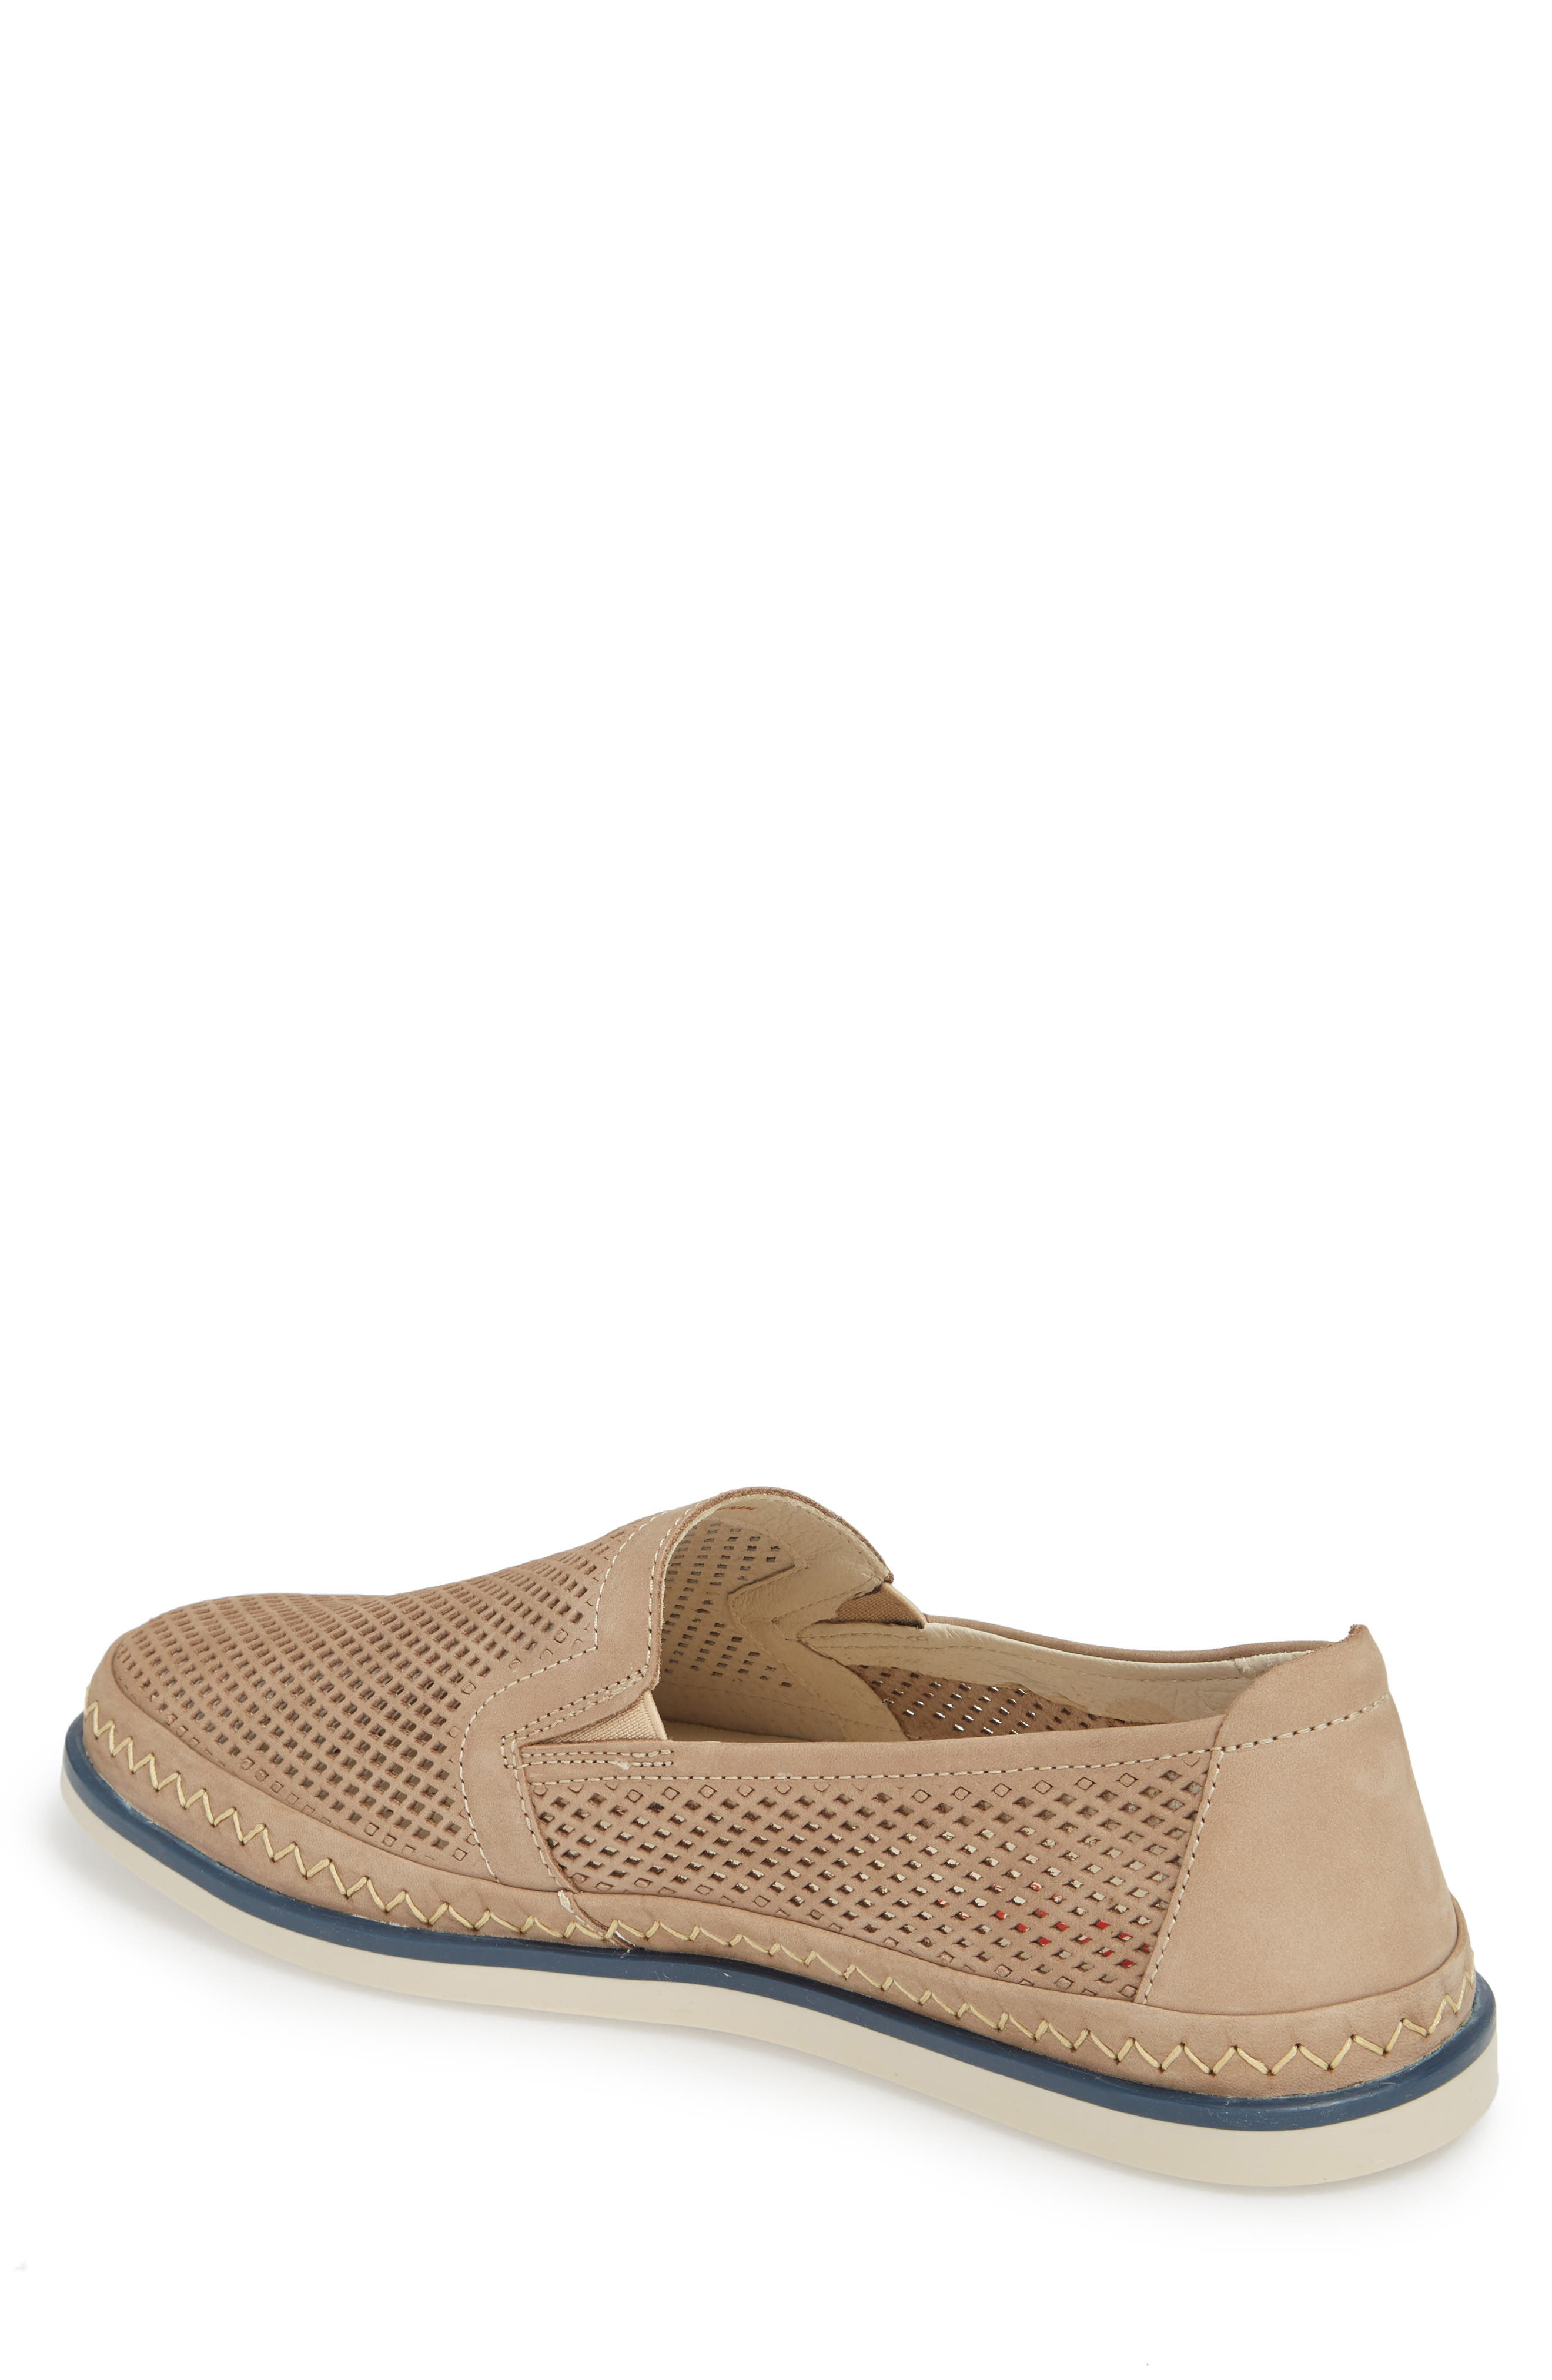 Linares Slip-On Loafer,                             Alternate thumbnail 2, color,                             Piedra Leather